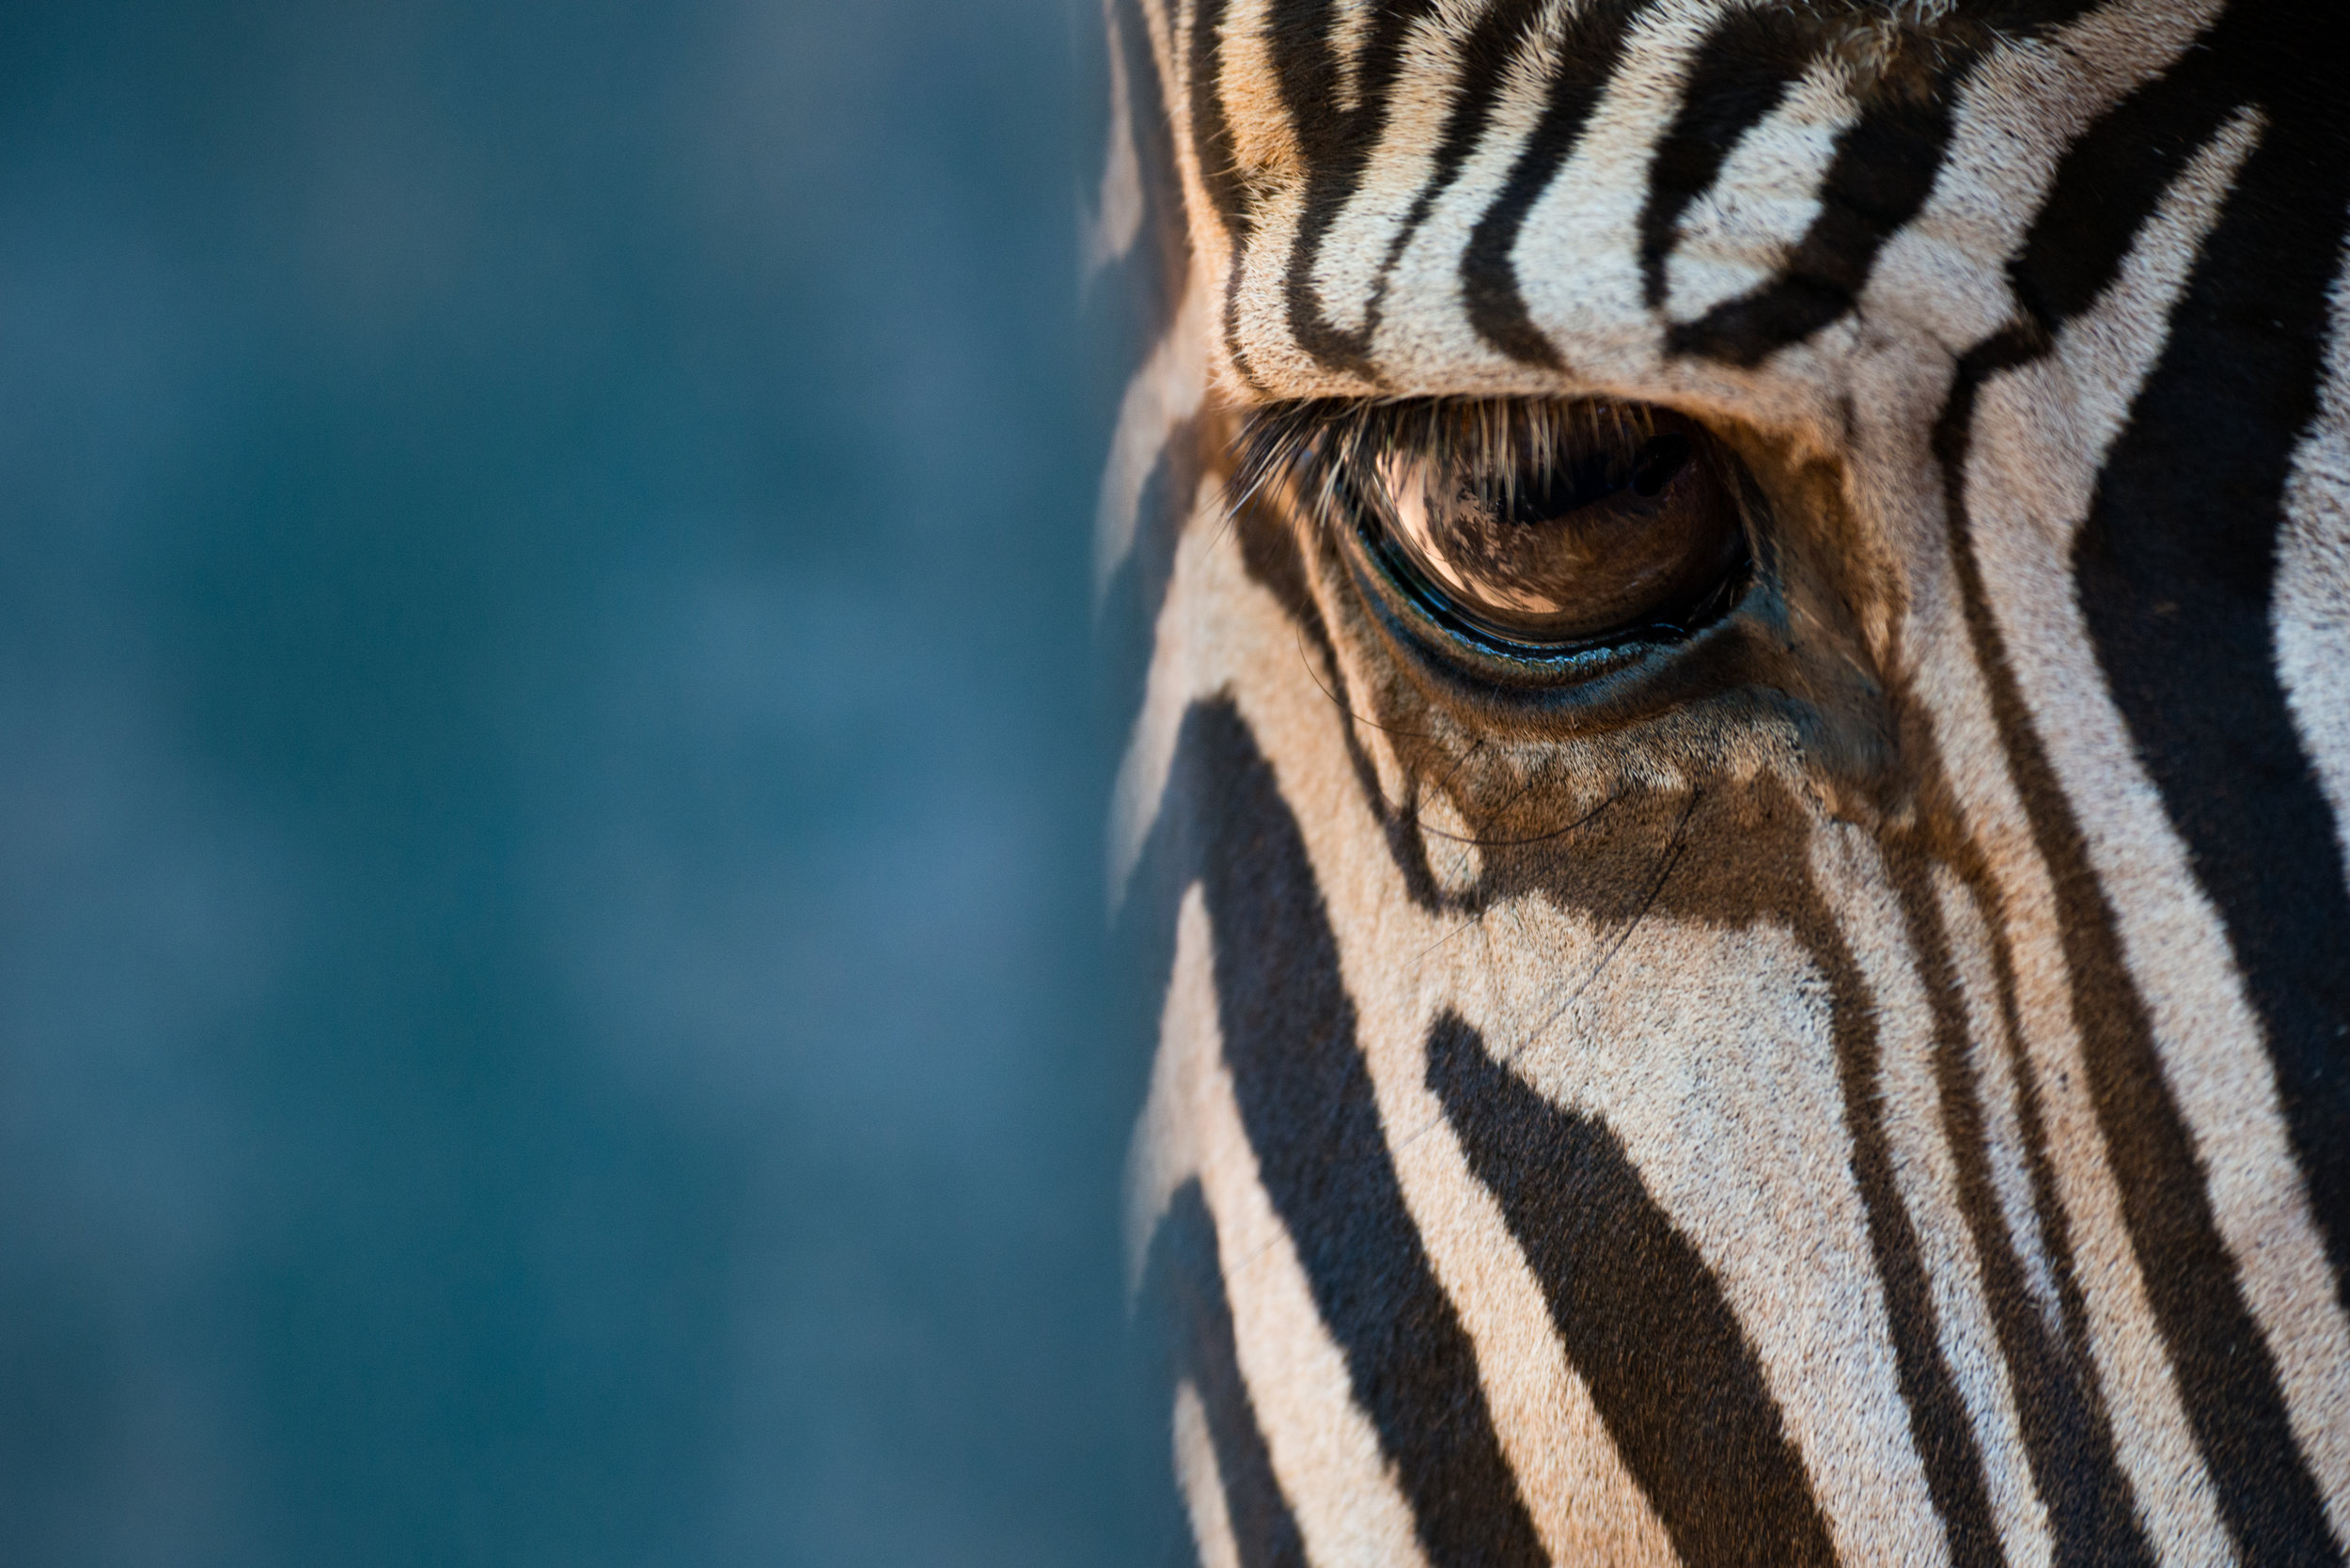 02: Close-up of right eye of Grevy zebra Verdict: Again, a lovely image, you just need to remove yourself from the eye